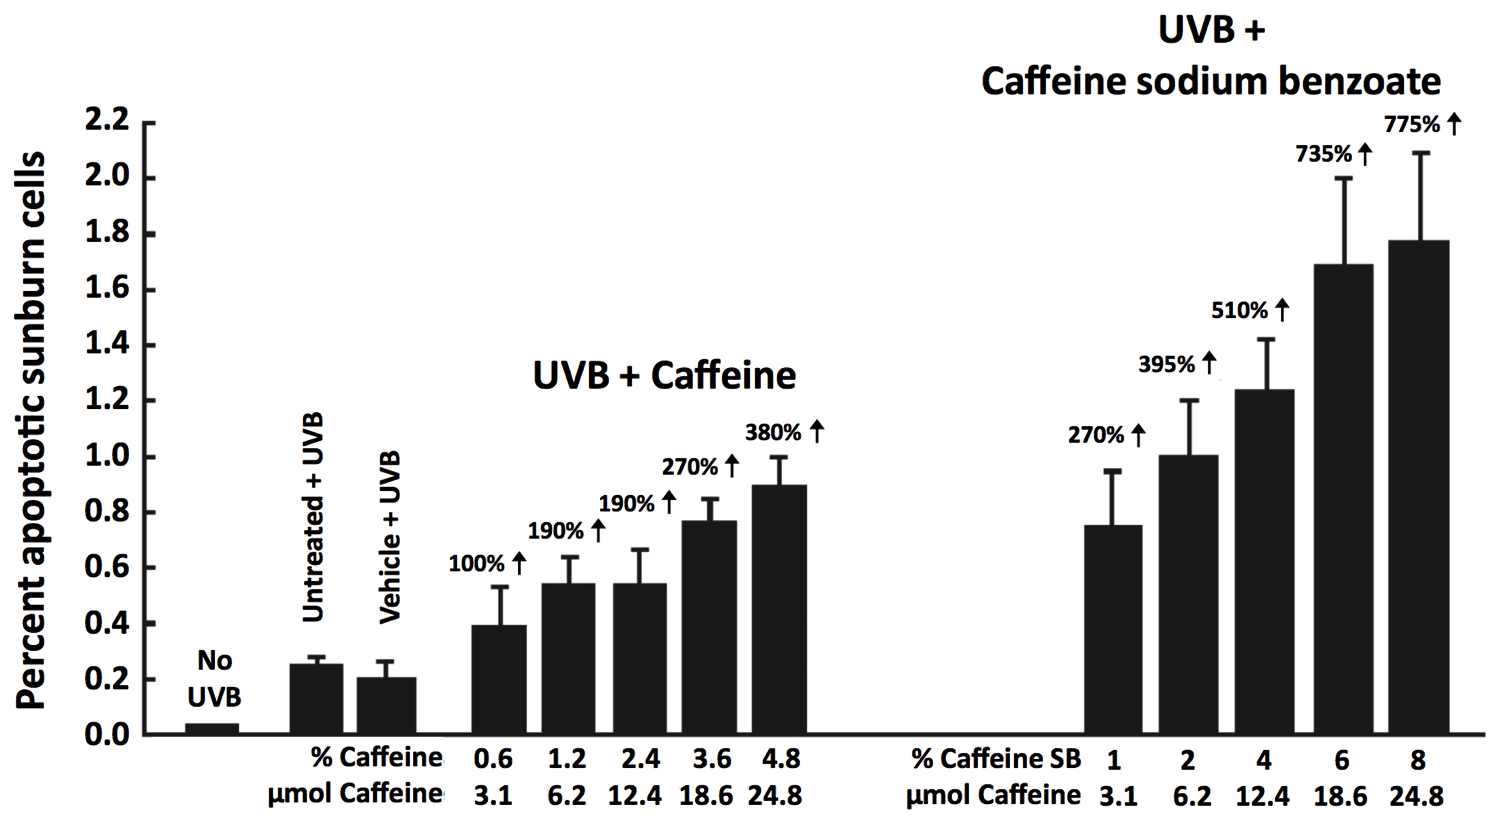 Mechanisms Of Caffeine-induced Inhibition Of UVB Carcinogenesis